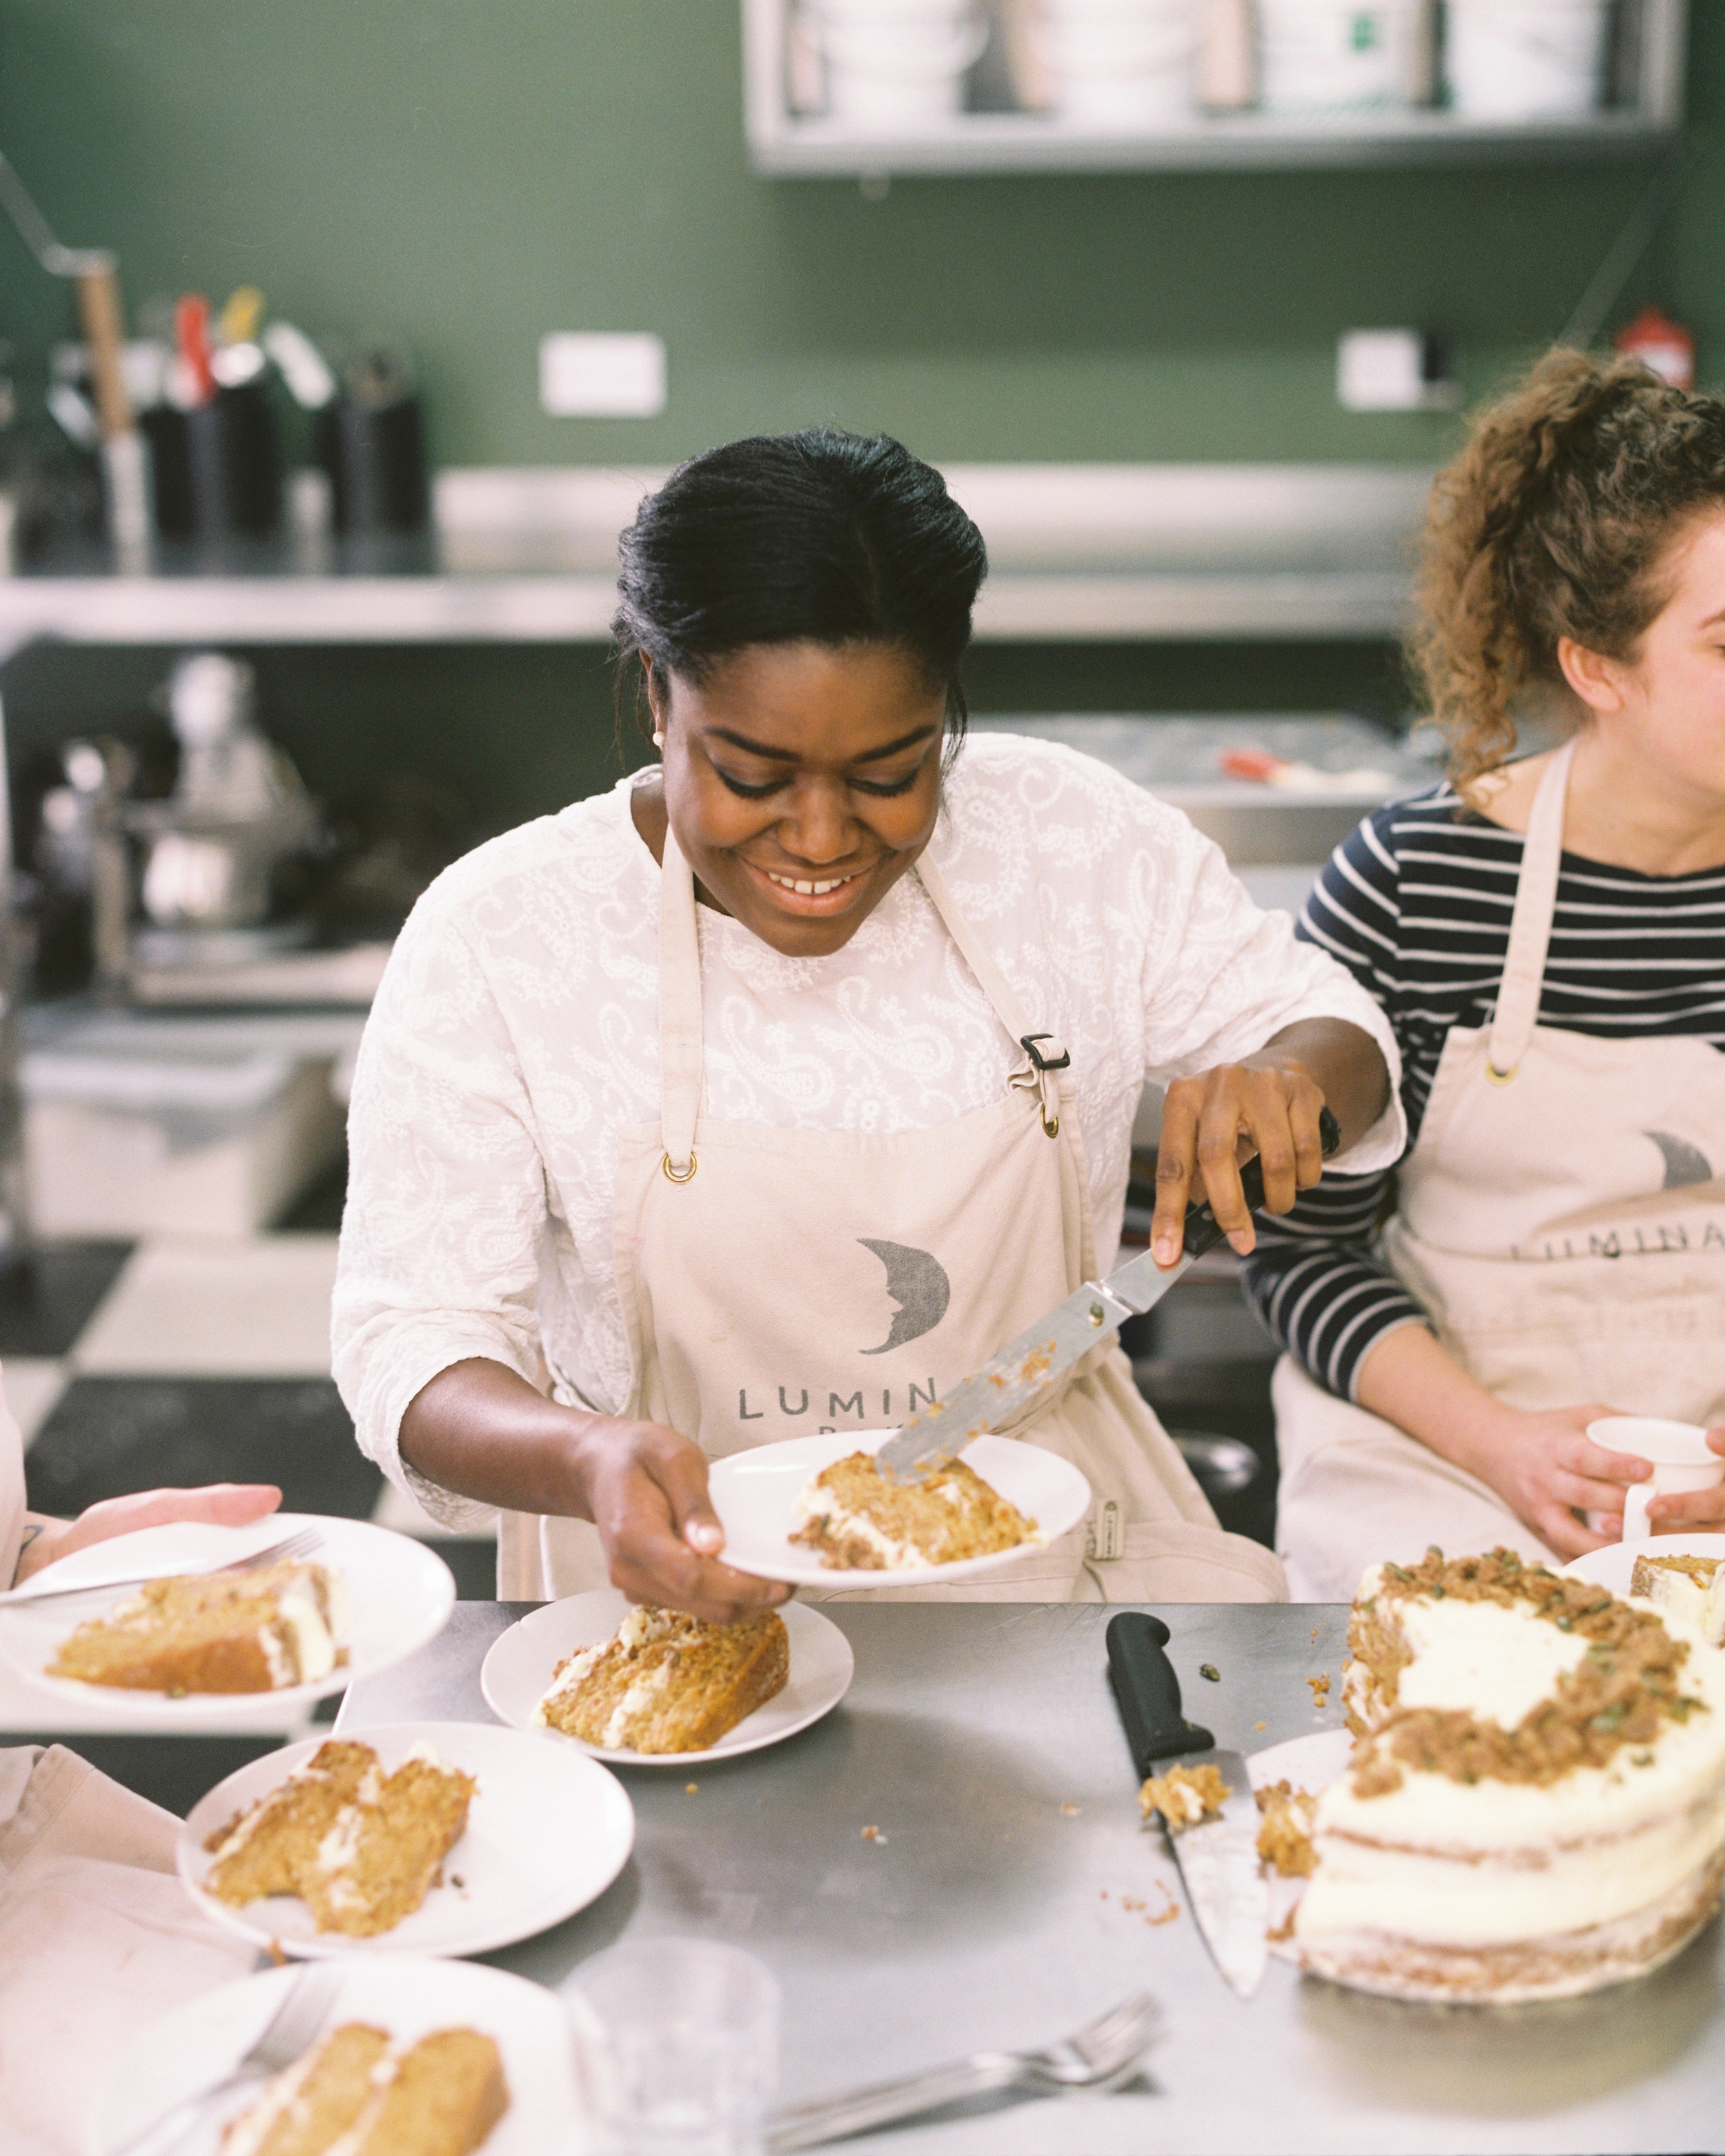 """Benjamina - 2016 Great British Bake Off quarter finalist, Benjamina Ebuehi is a Londoner who has been baking since she was 14...""""I believe that the gifts and talents we've been given should be shared and used to benefit and encourage others - I've chosen to do that through partnering with Luminary Bakery. They are doing a wonderful job of equipping, training and listening to women, and I'm so excited to be a part of the journey. ''Her website is Carrot & Crumb"""